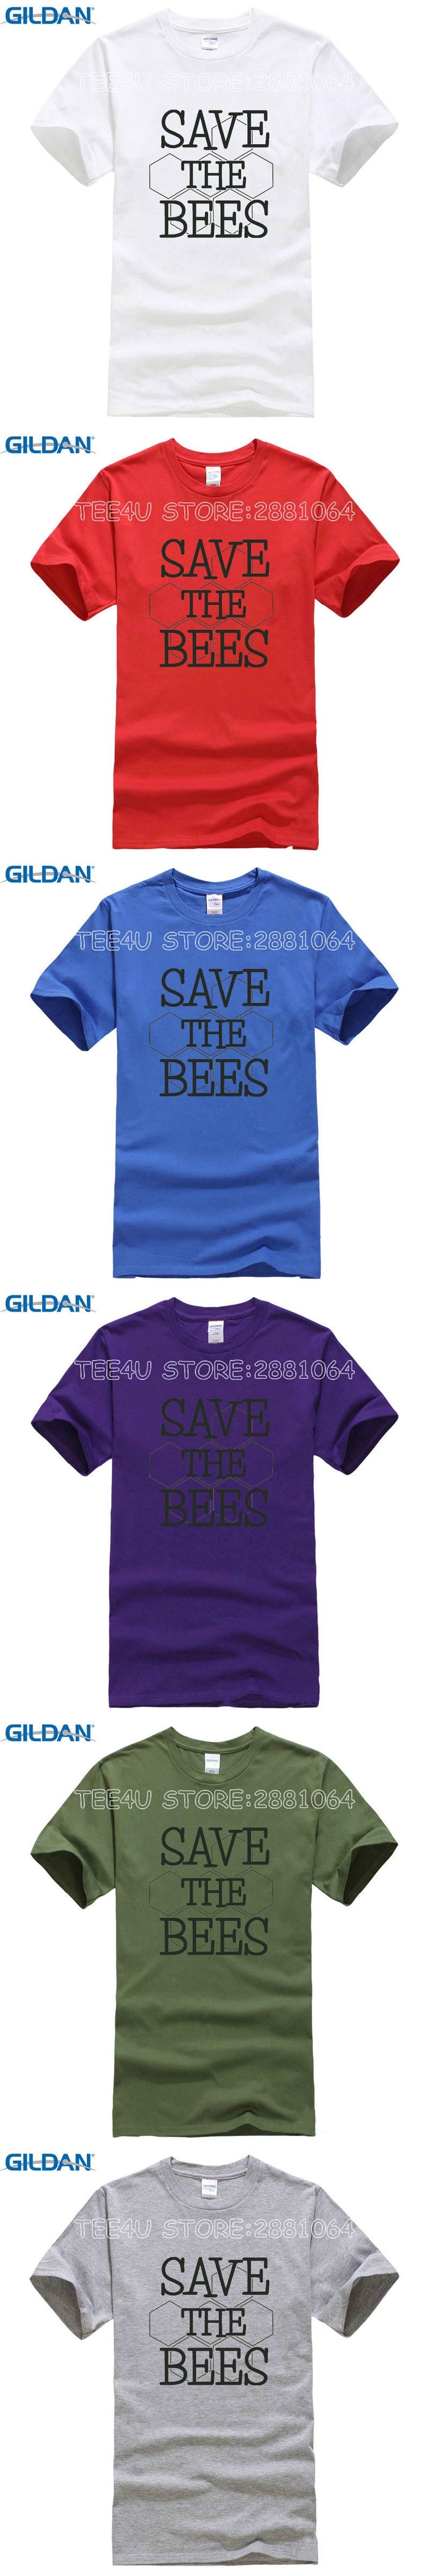 Design Your Own T Shirt And Save It: Tee4U Design Your Own T Shirt Save The Bees Short O-Neck Office Tee rh:pinterest.com,Design